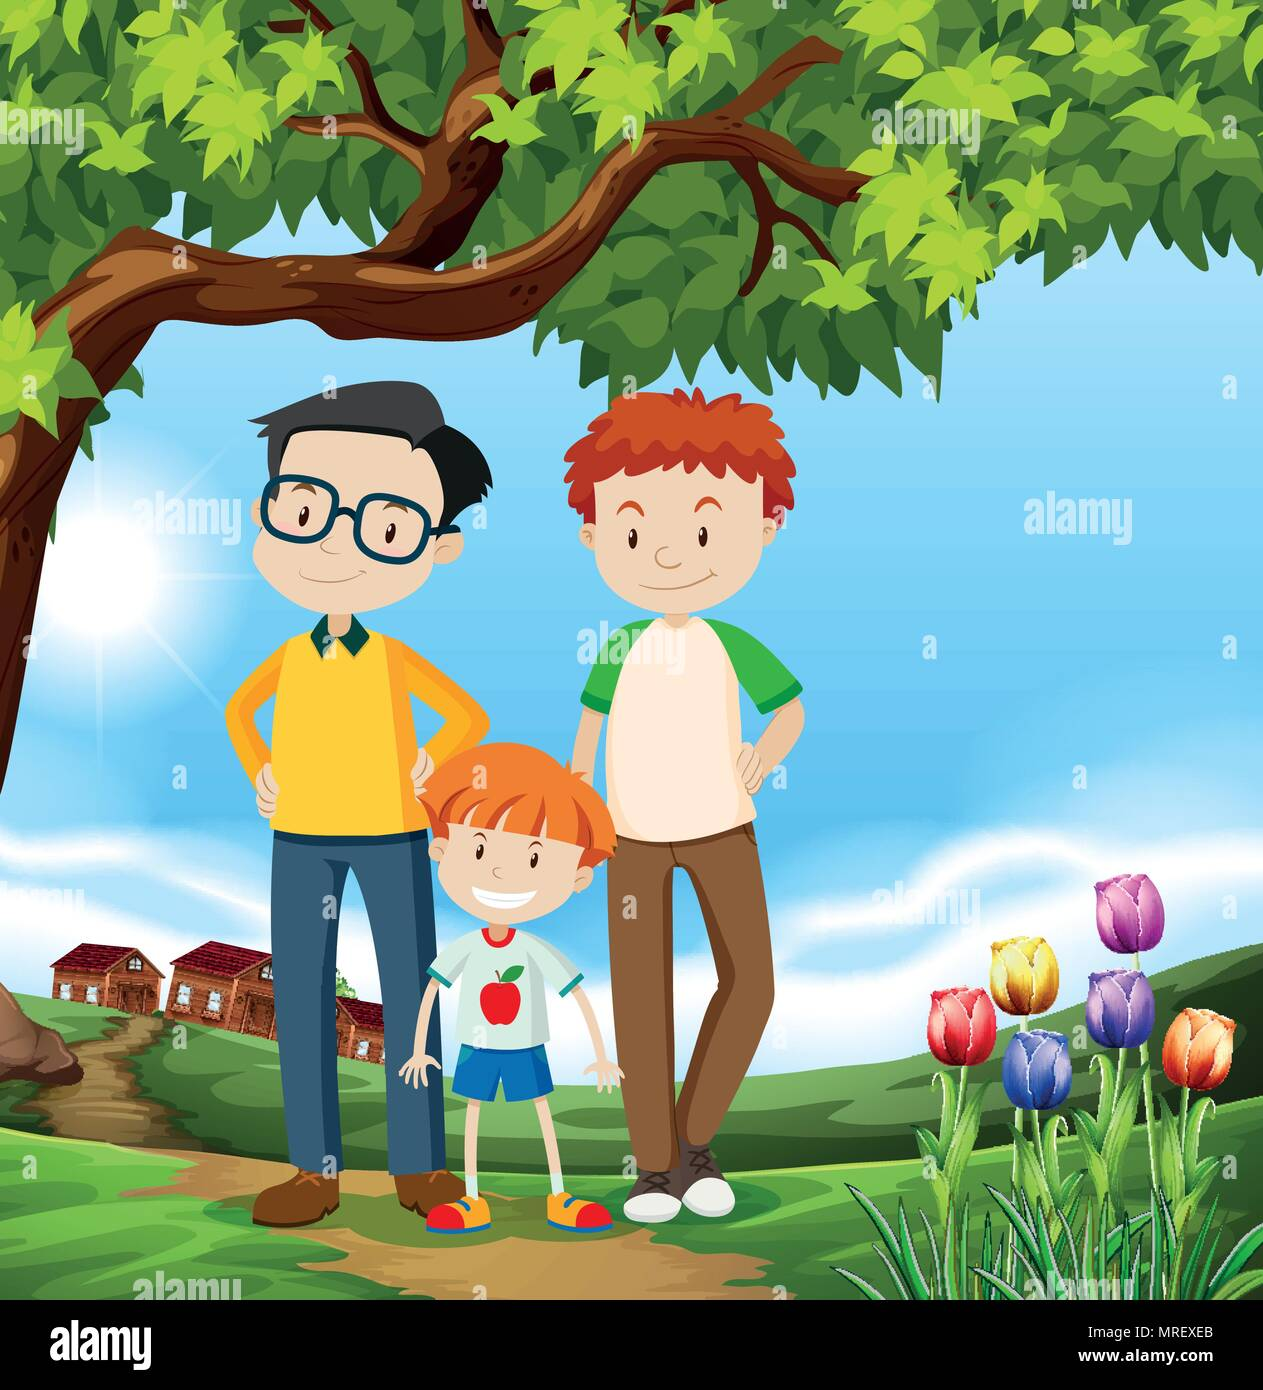 A Happy LGBT Adoption Family illustration - Stock Vector